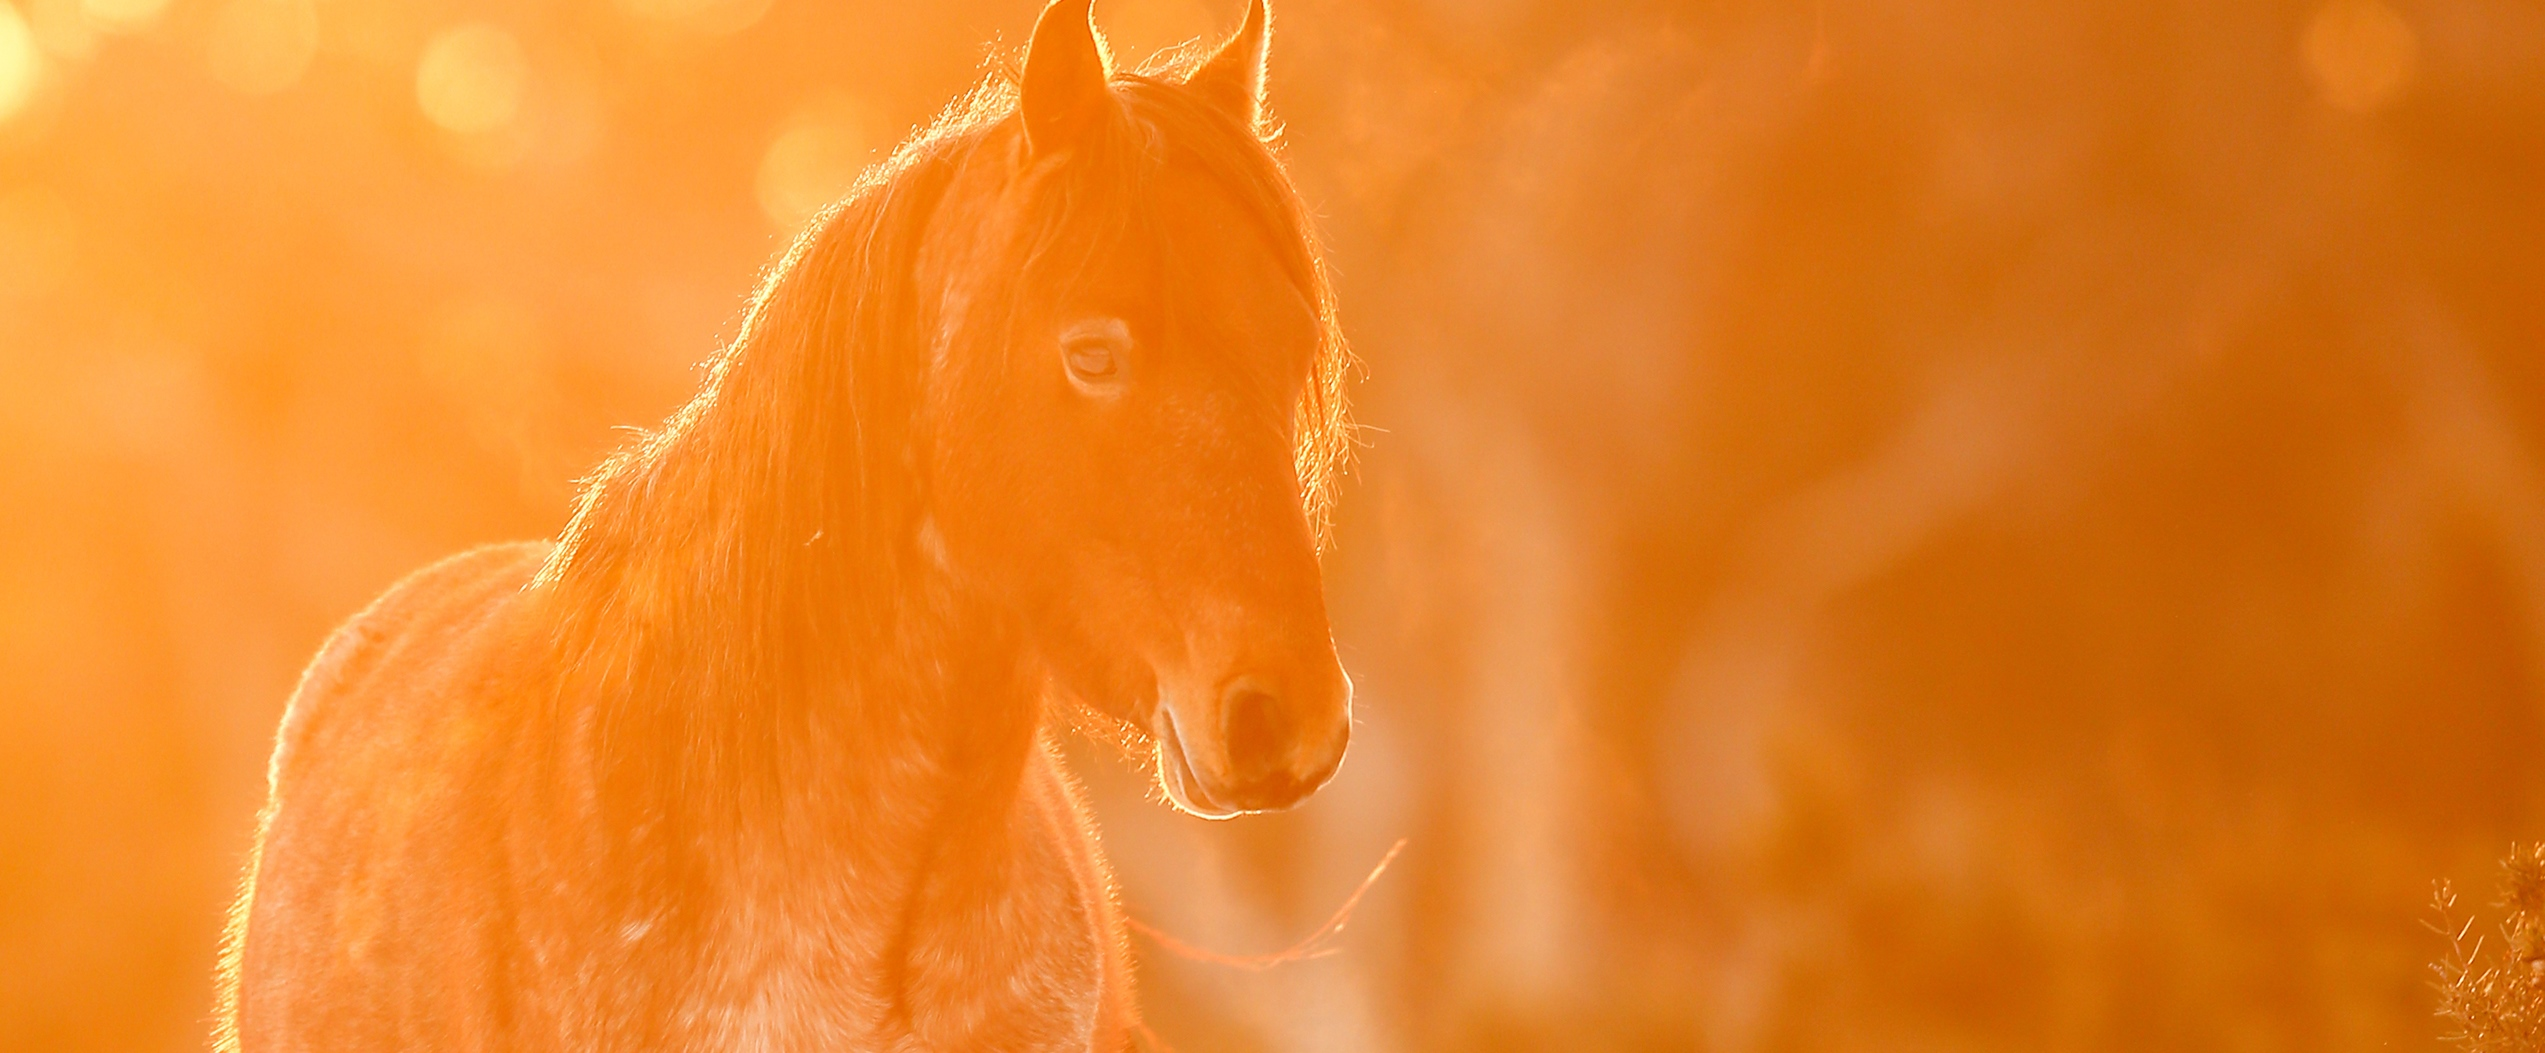 The Lone Brumby Colt: Australian Snowy Mountains, Wild Horses of the World